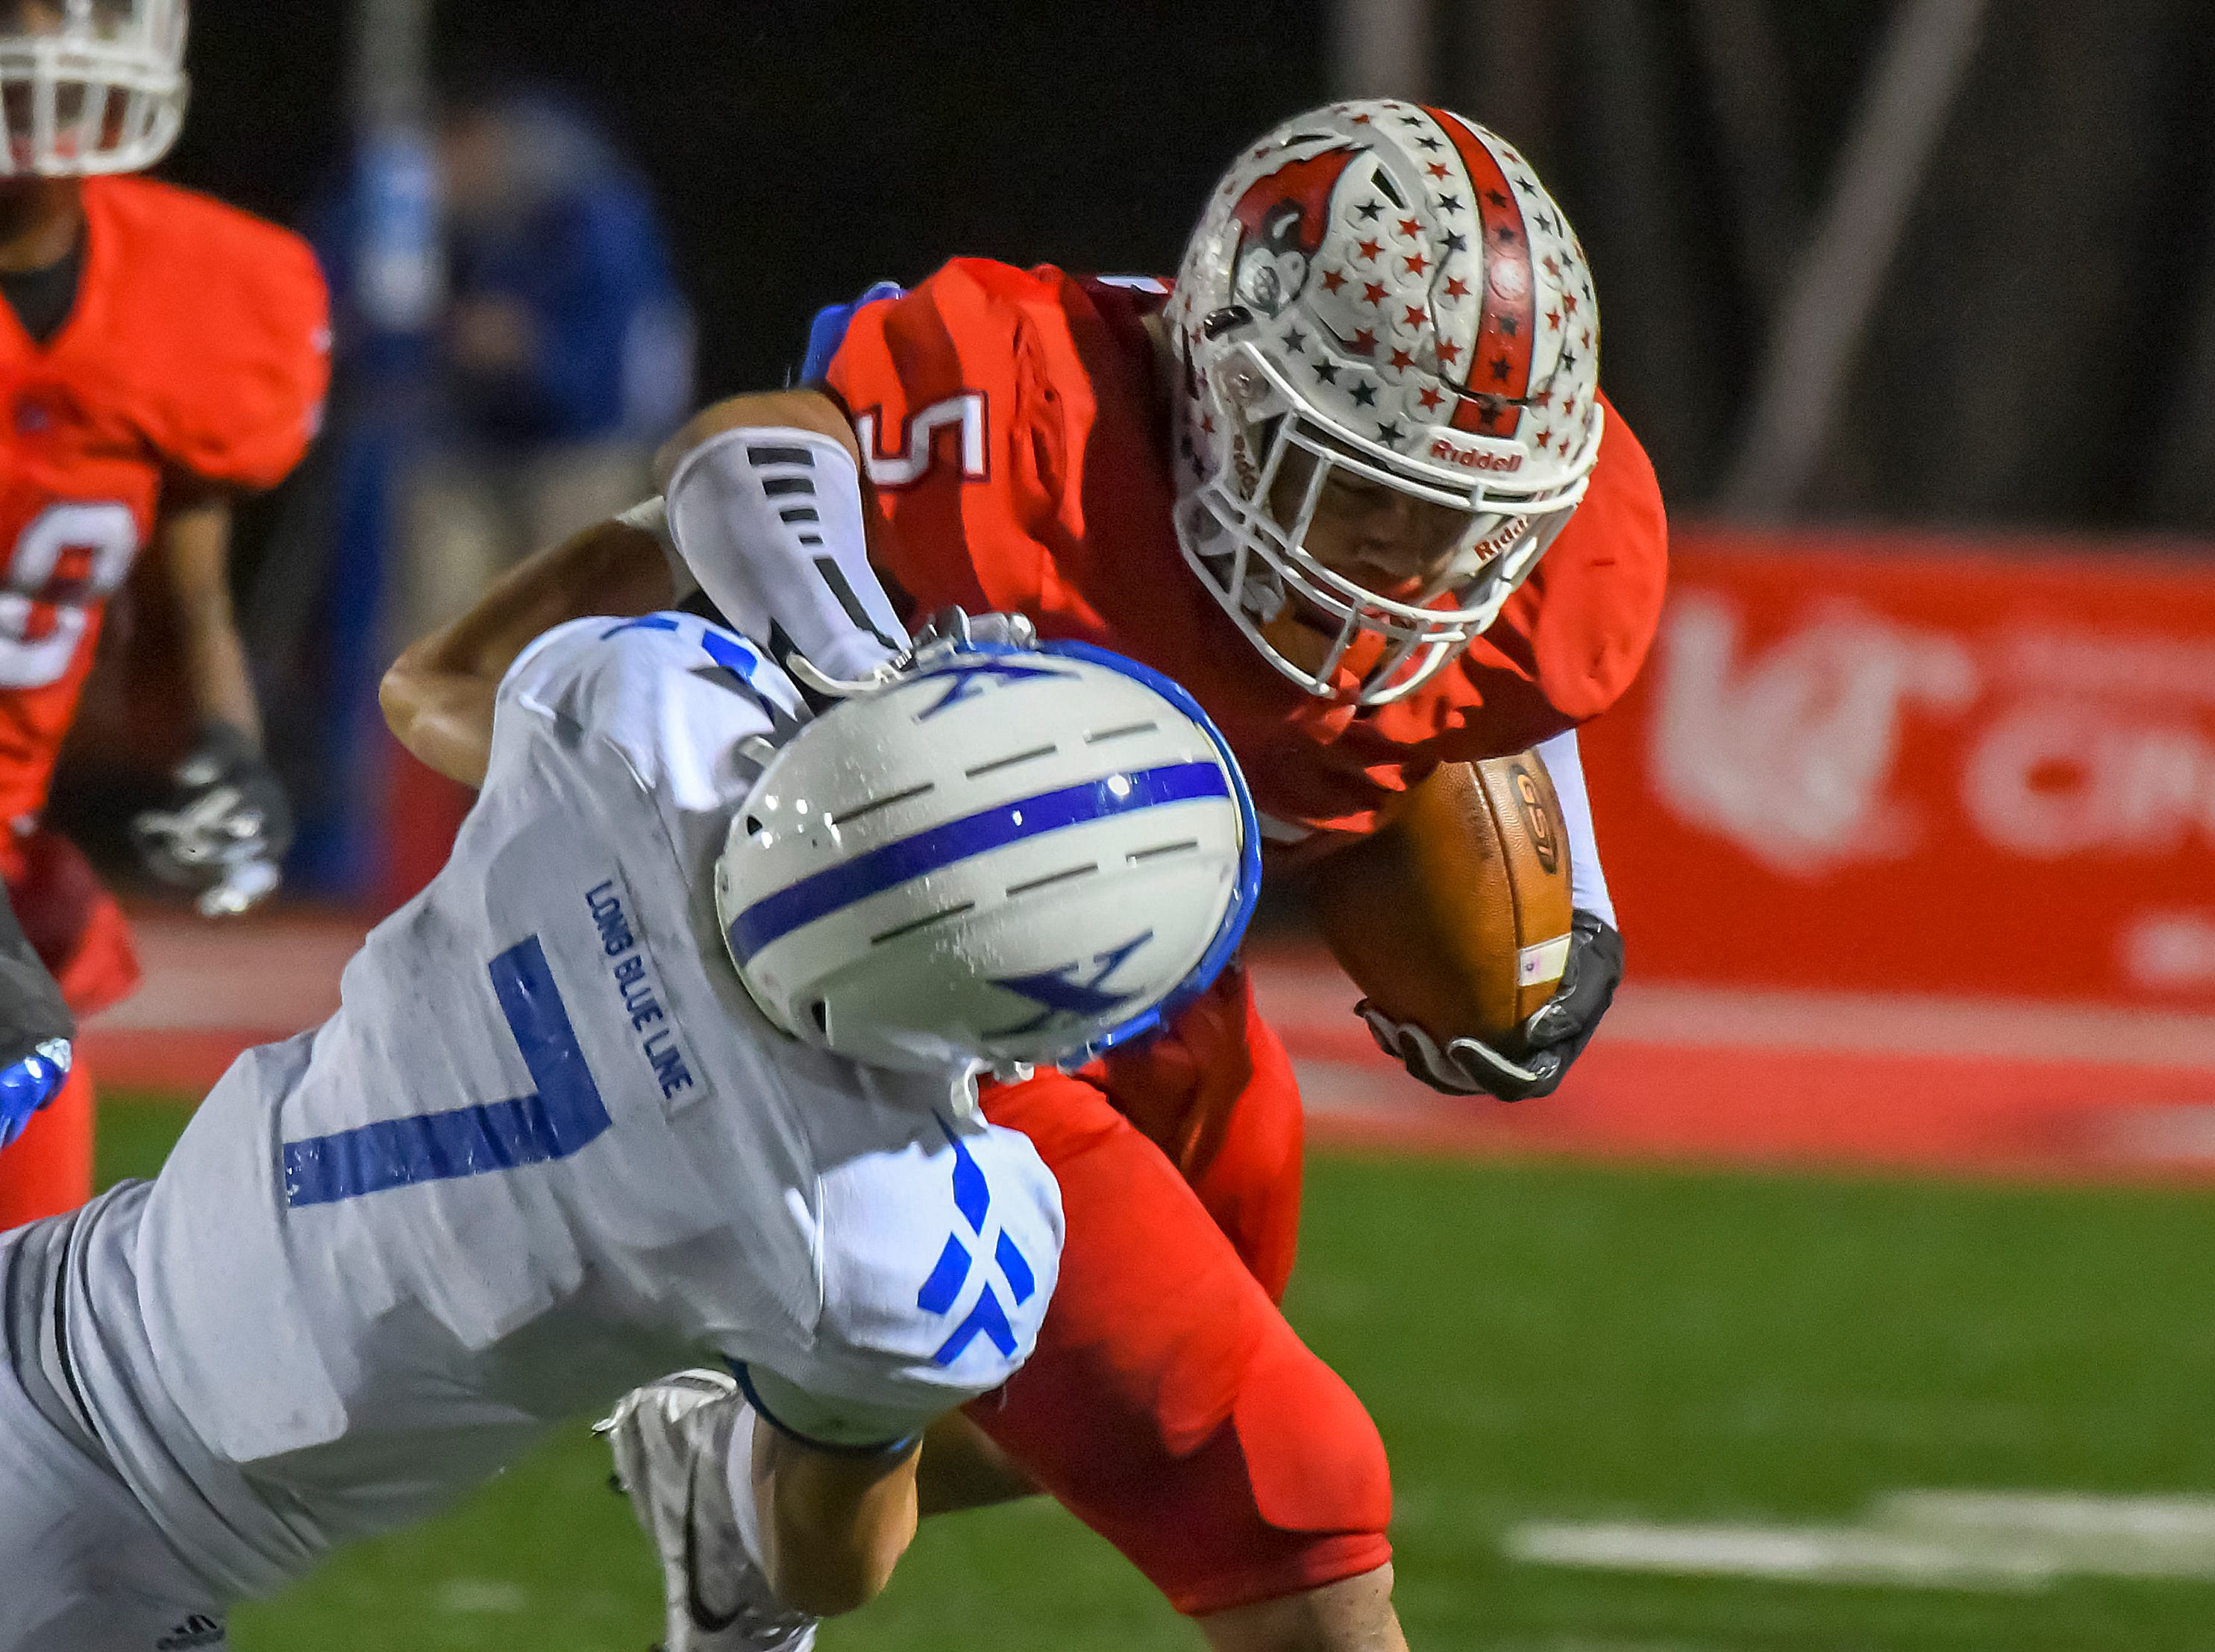 Ivan Pace Jr. of Colerain stiff arms St. X defender Wiles Dolle (7) in the OHSAA DI Region 4 Playoffs at Colerain High School,  Friday Nov. 2, 2018